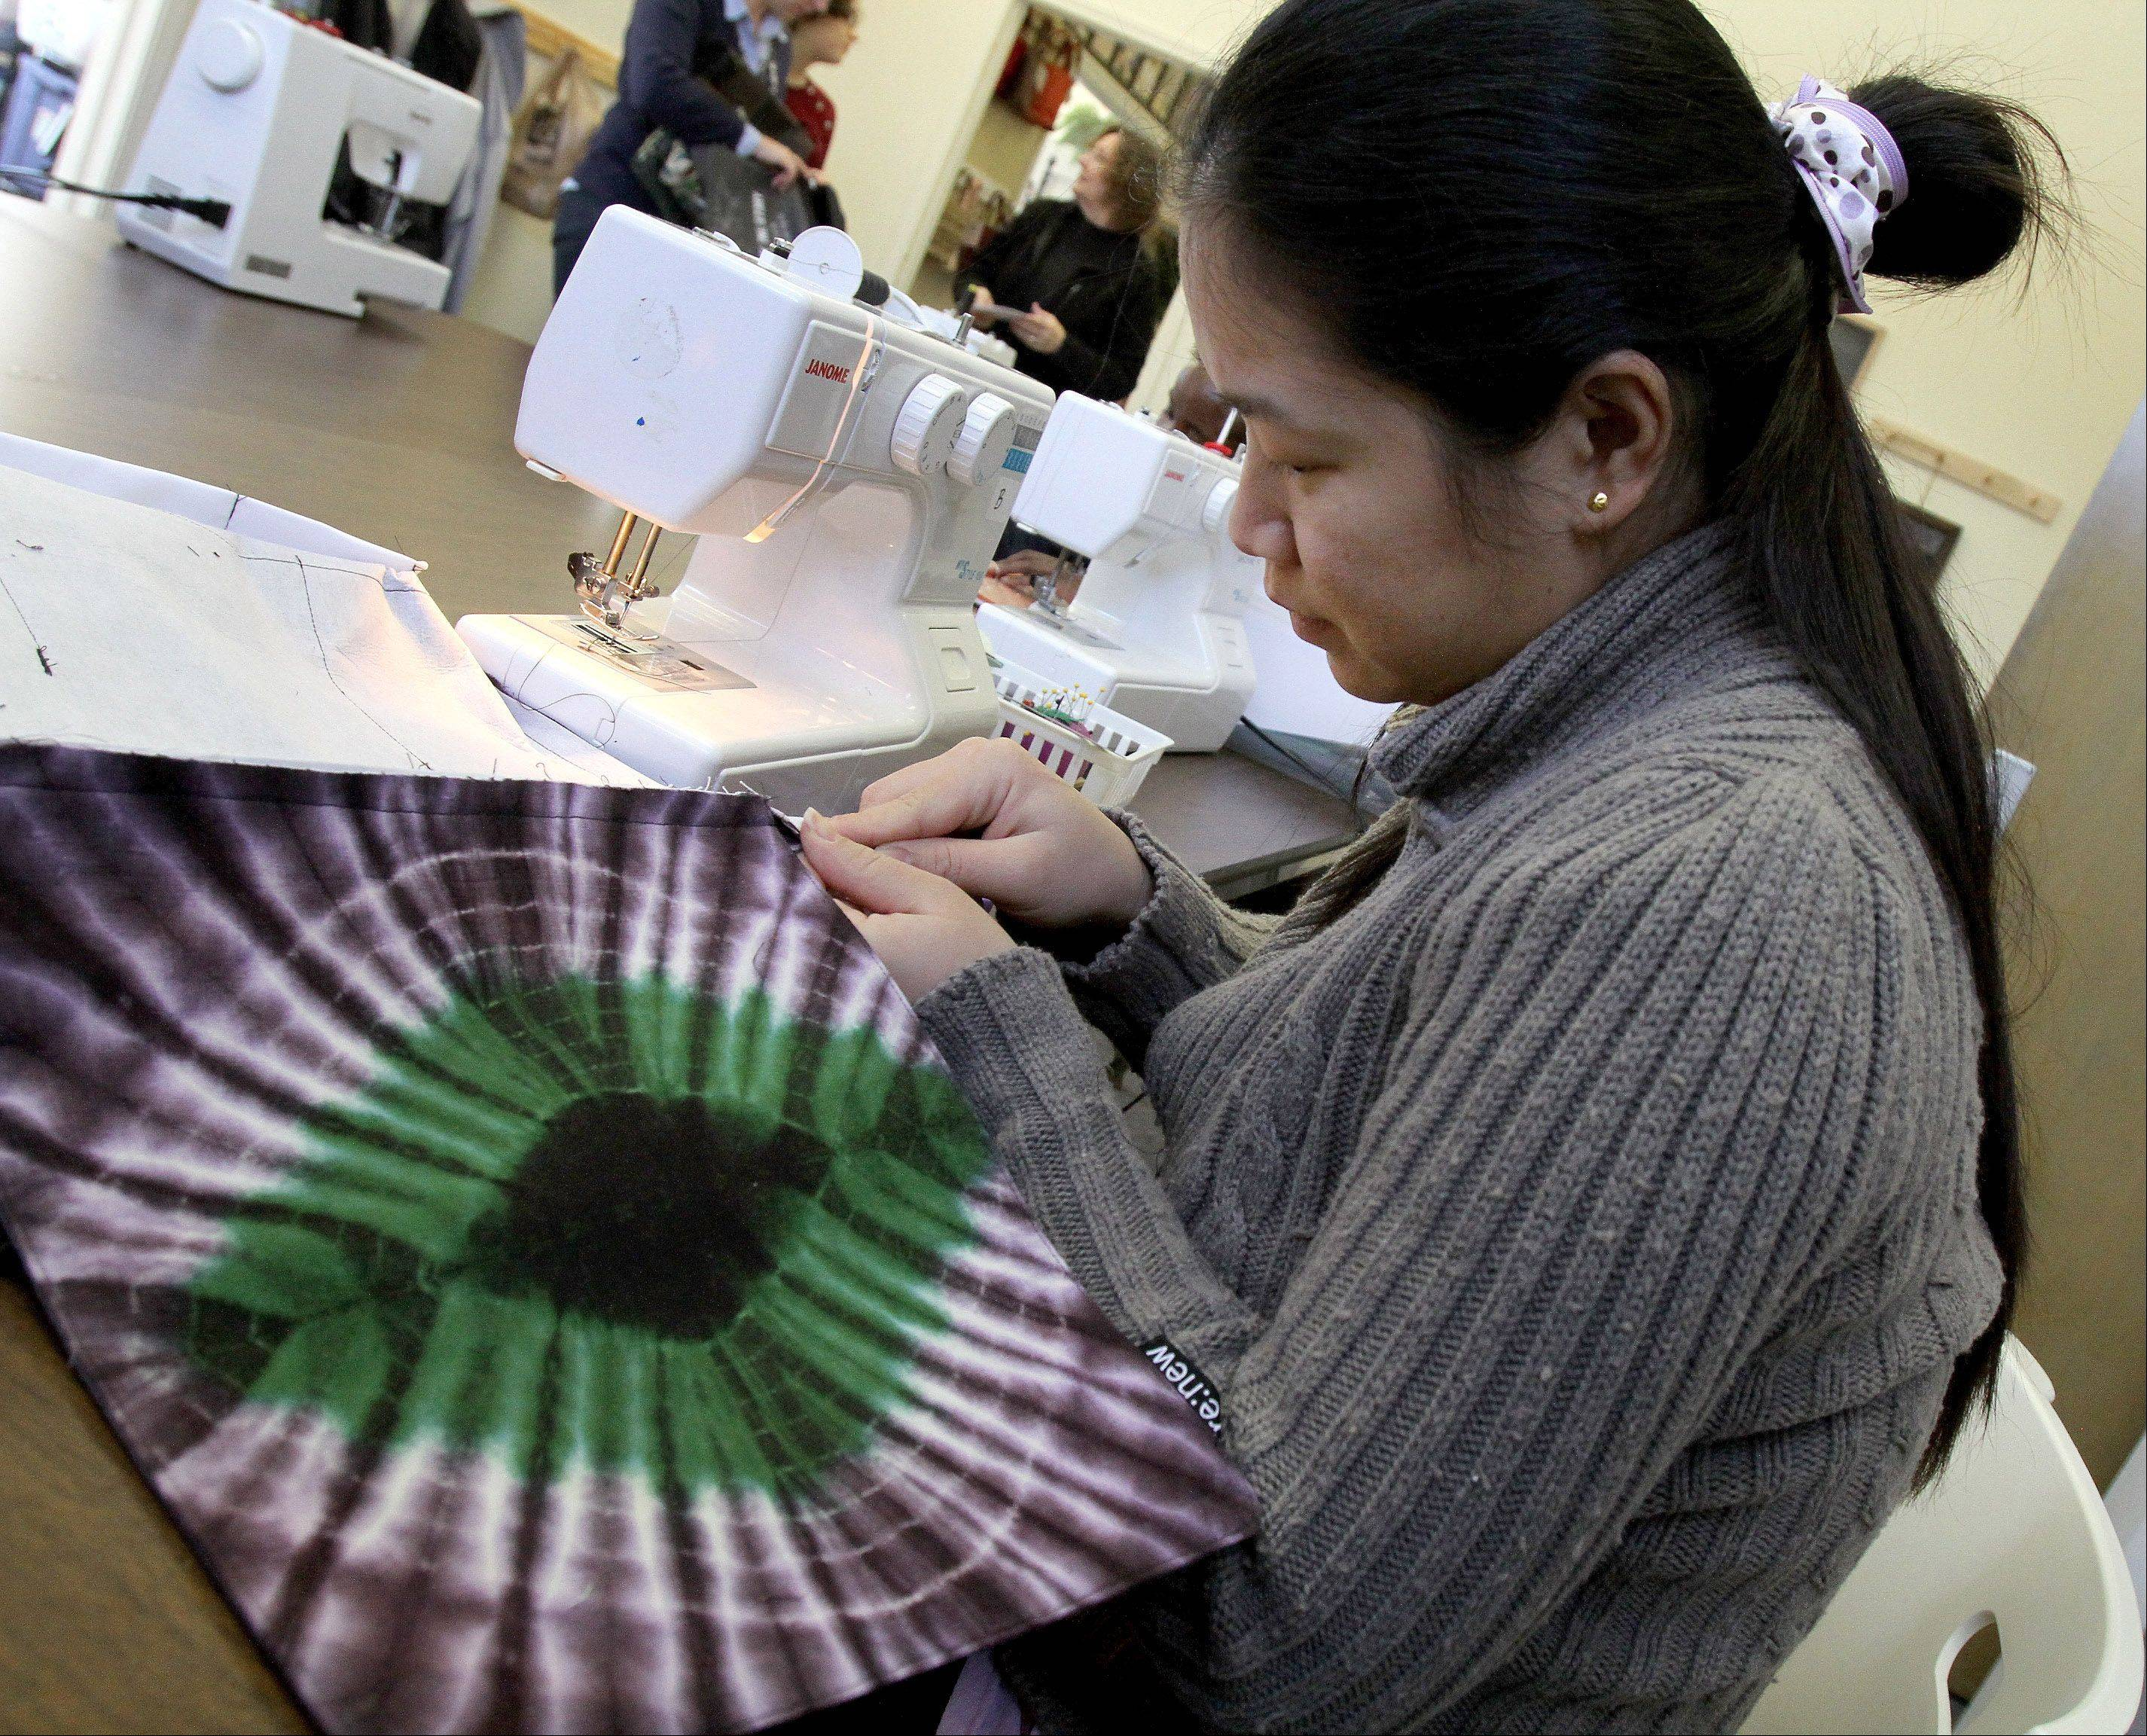 Esther Lahtaw of Wheaton, a refugee from Burma, works on a piece at Re: new in Glen Ellyn.